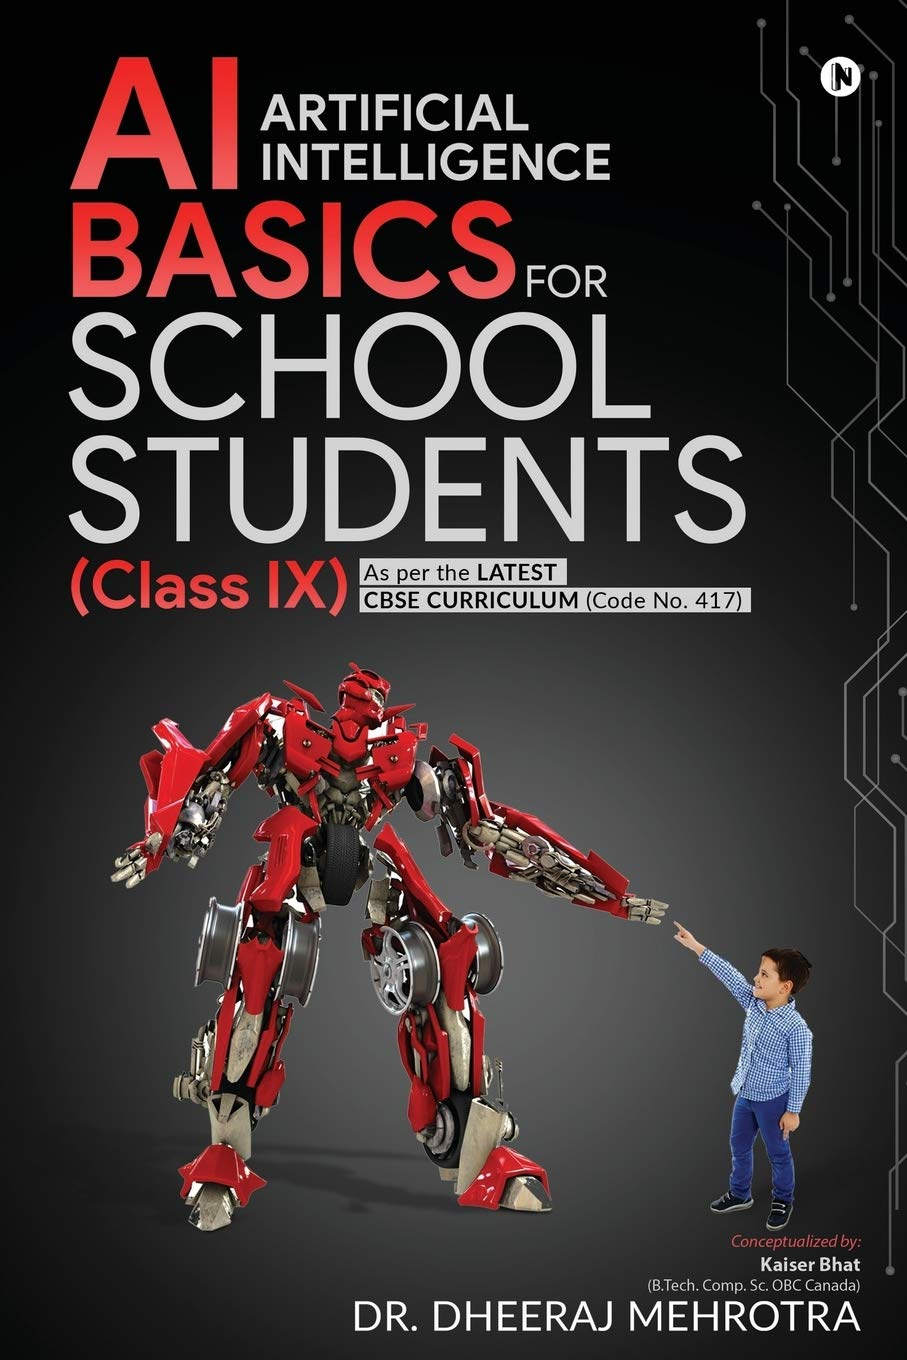 AI – Artificial Intelligence Basics For School Students (Class IX): As per the latest CBSE curriculum (Code No. 417)